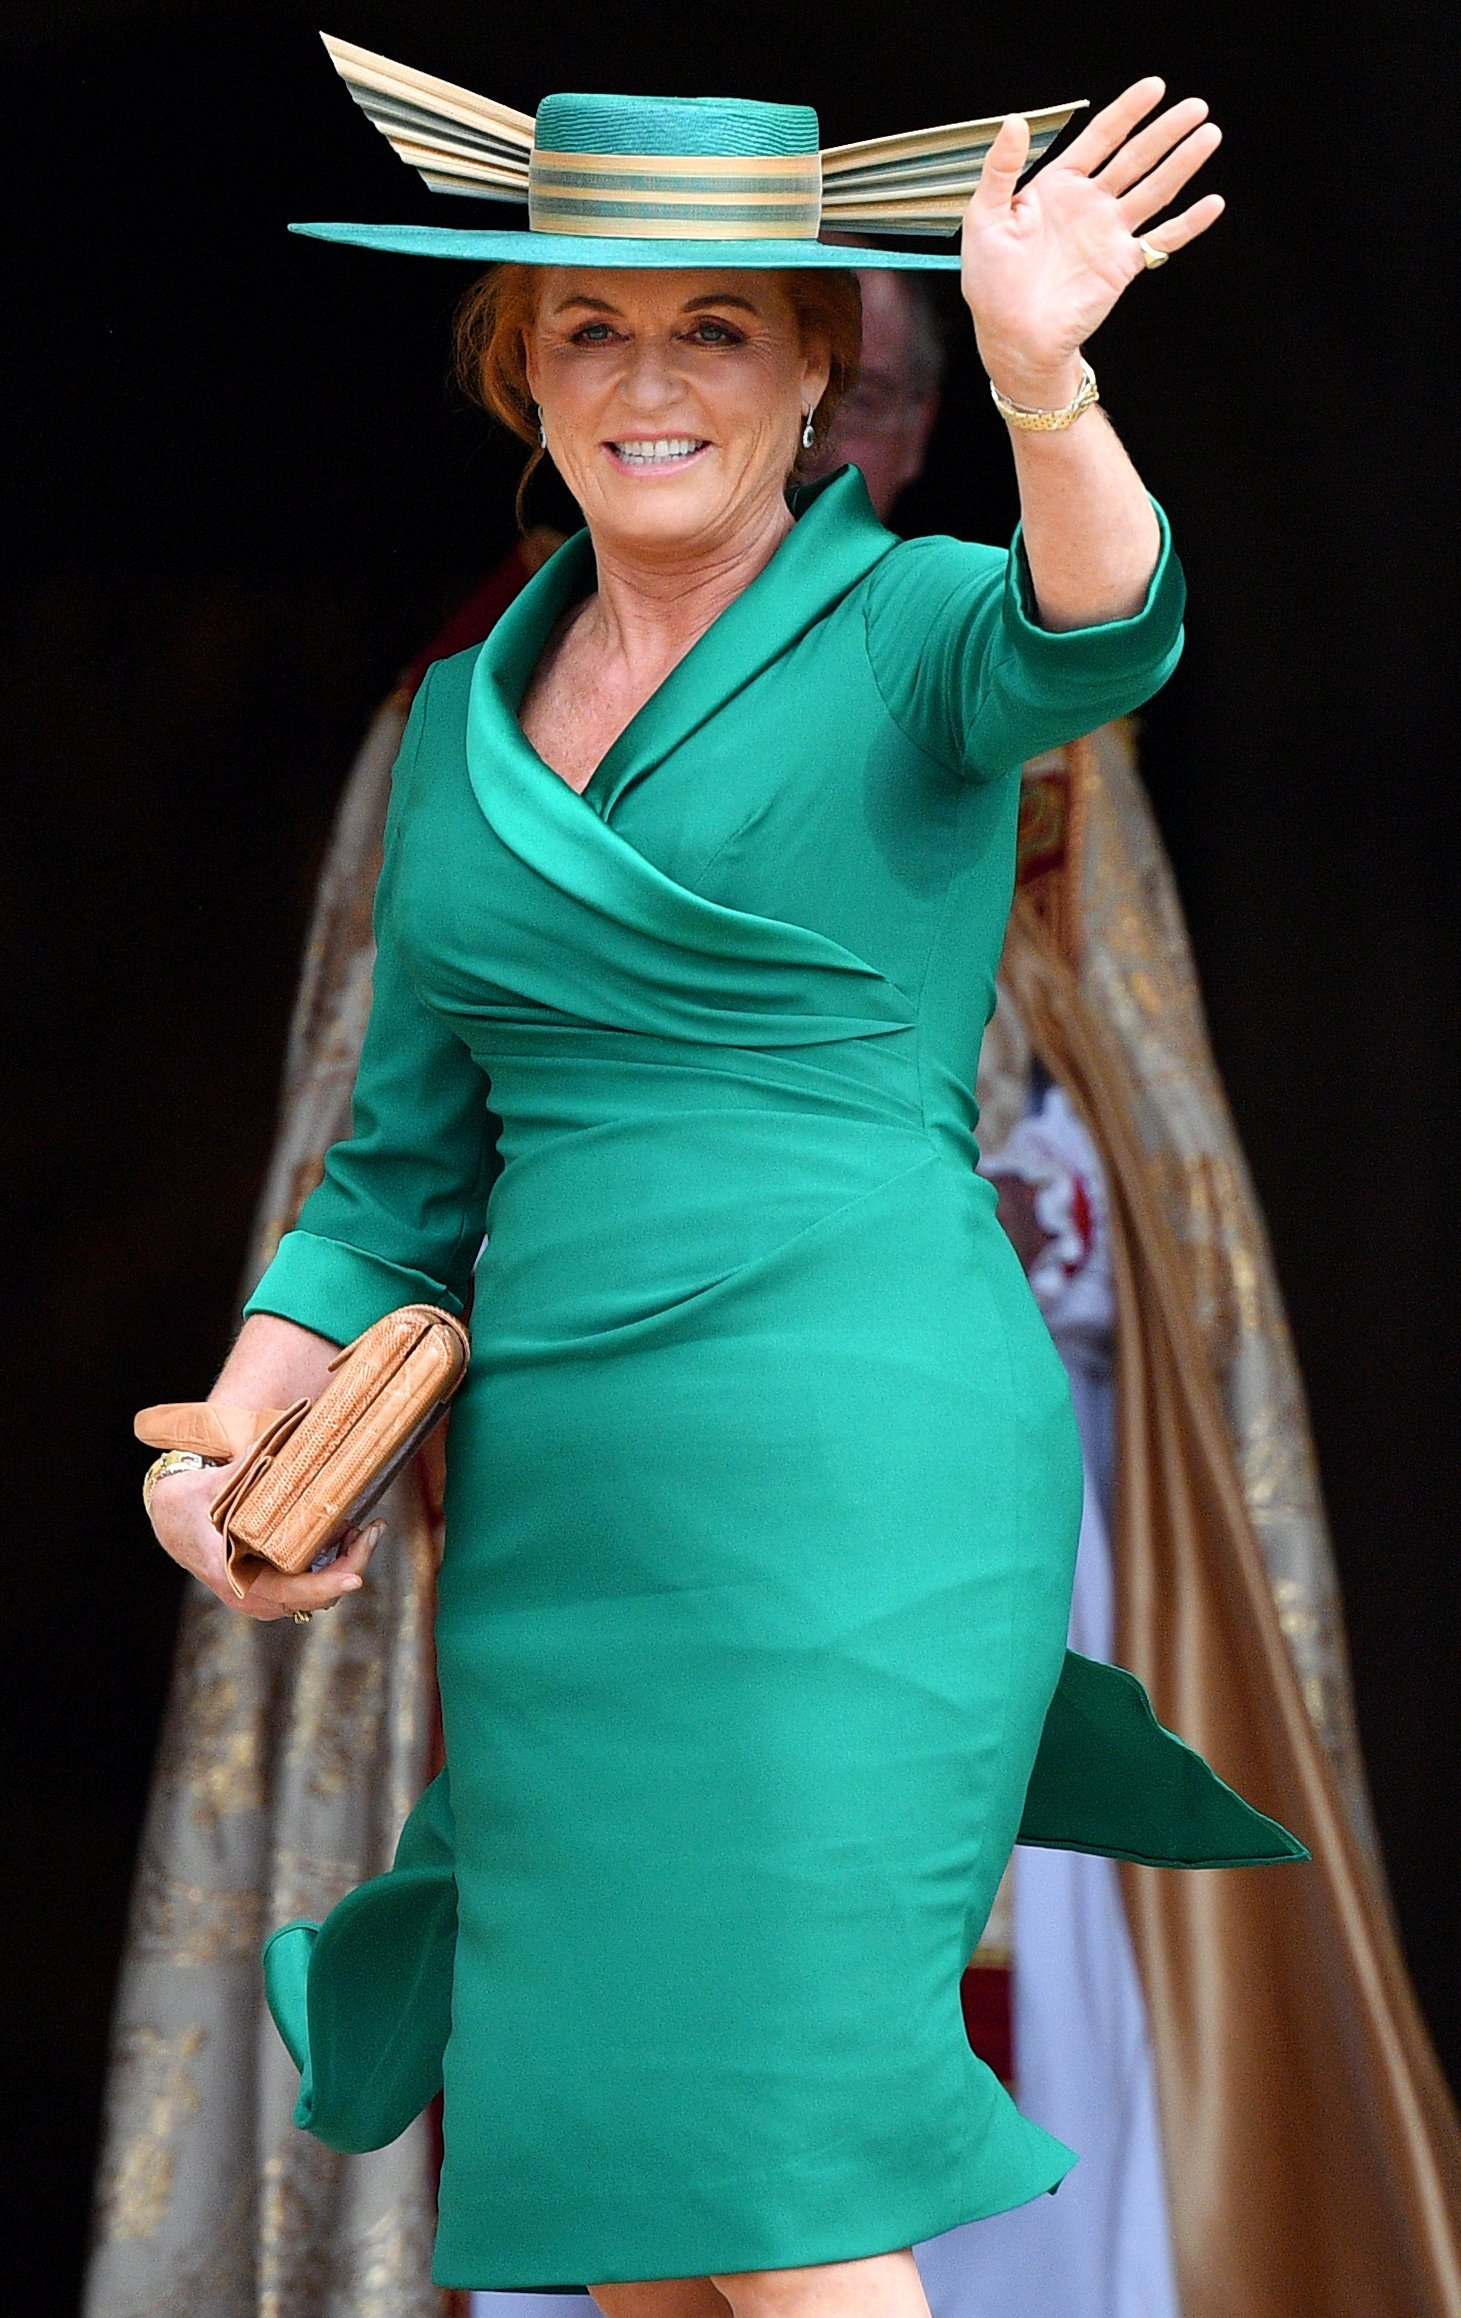 Sarah Ferguson attends Princess Eugenie's wedding at St George's Chapel in Windsor Castle in October 2018 | Photo: Getty Images